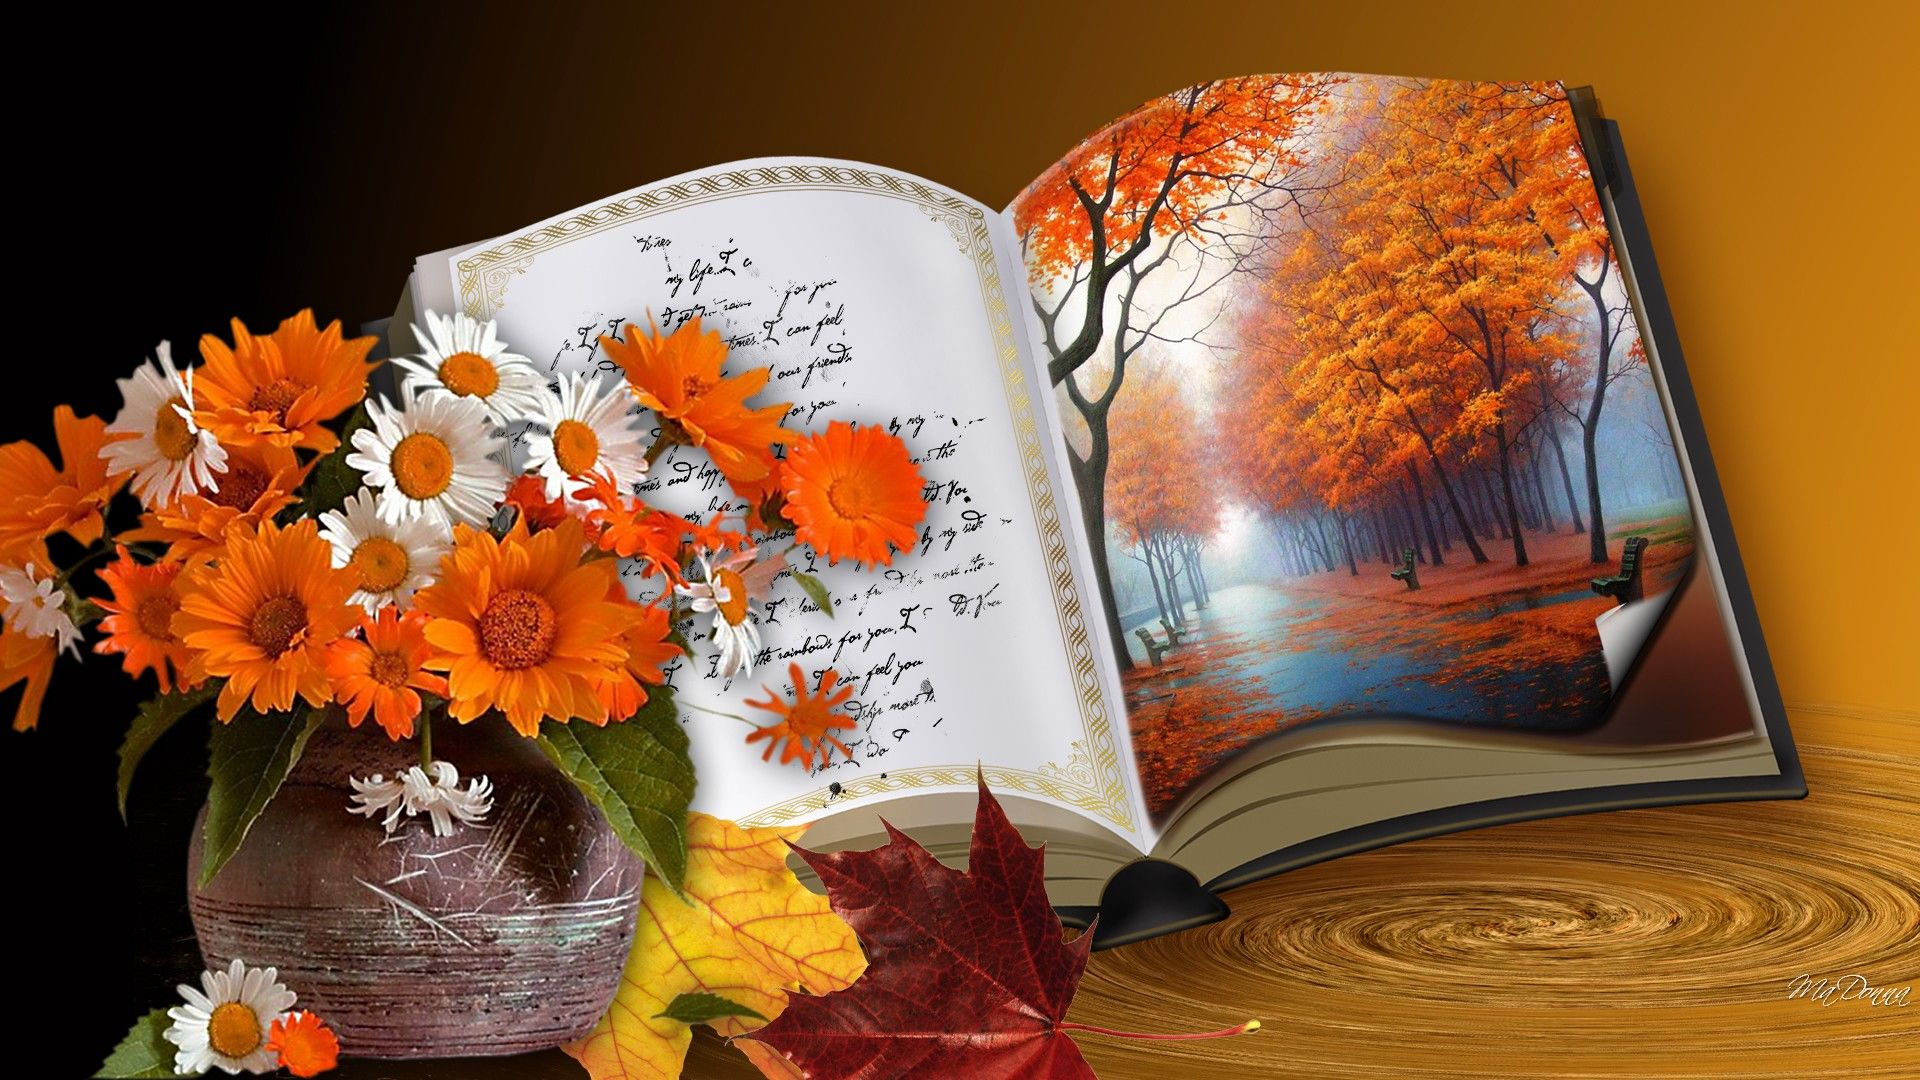 Seasonal Fall Coffee Desktop Wallpaper Book Of Autumn Pictures Photos And Images For Facebook